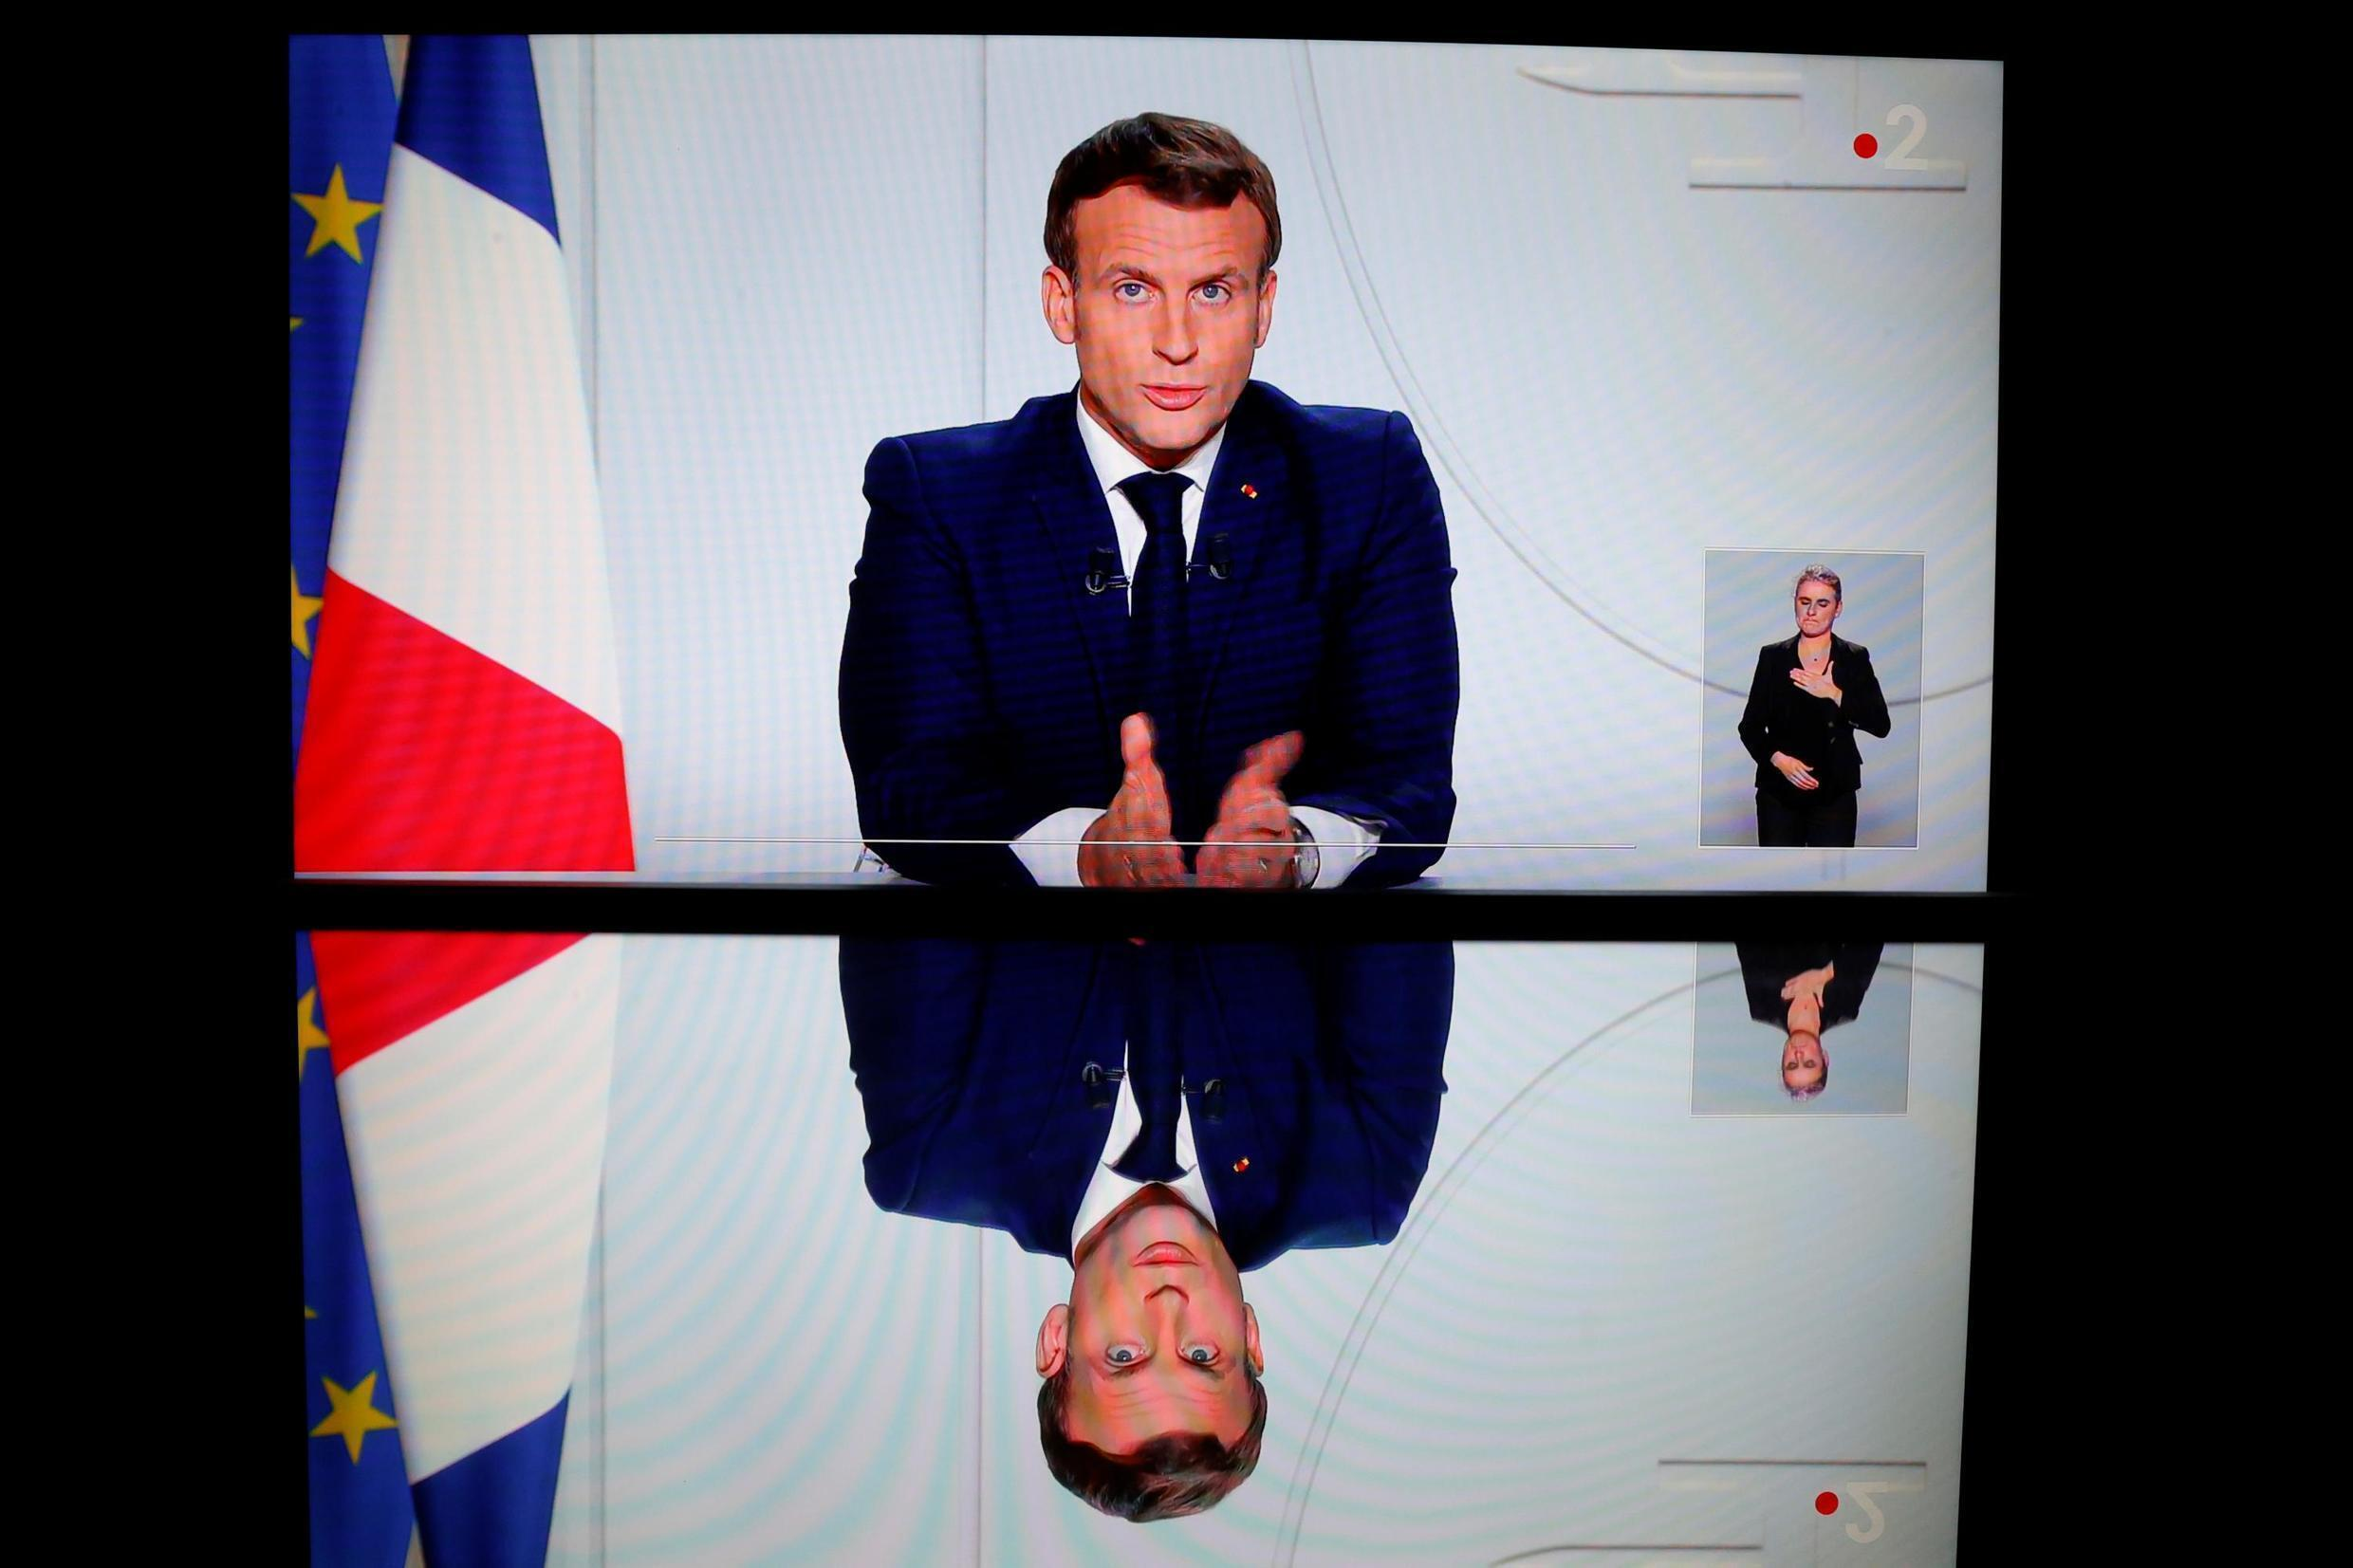 French President Emmanuel Macron announced a new general confinement to fight a surging second wave of the Covid-19 epidemic during a televised evening address from the Elysée presidential palace on 28 October 2020.